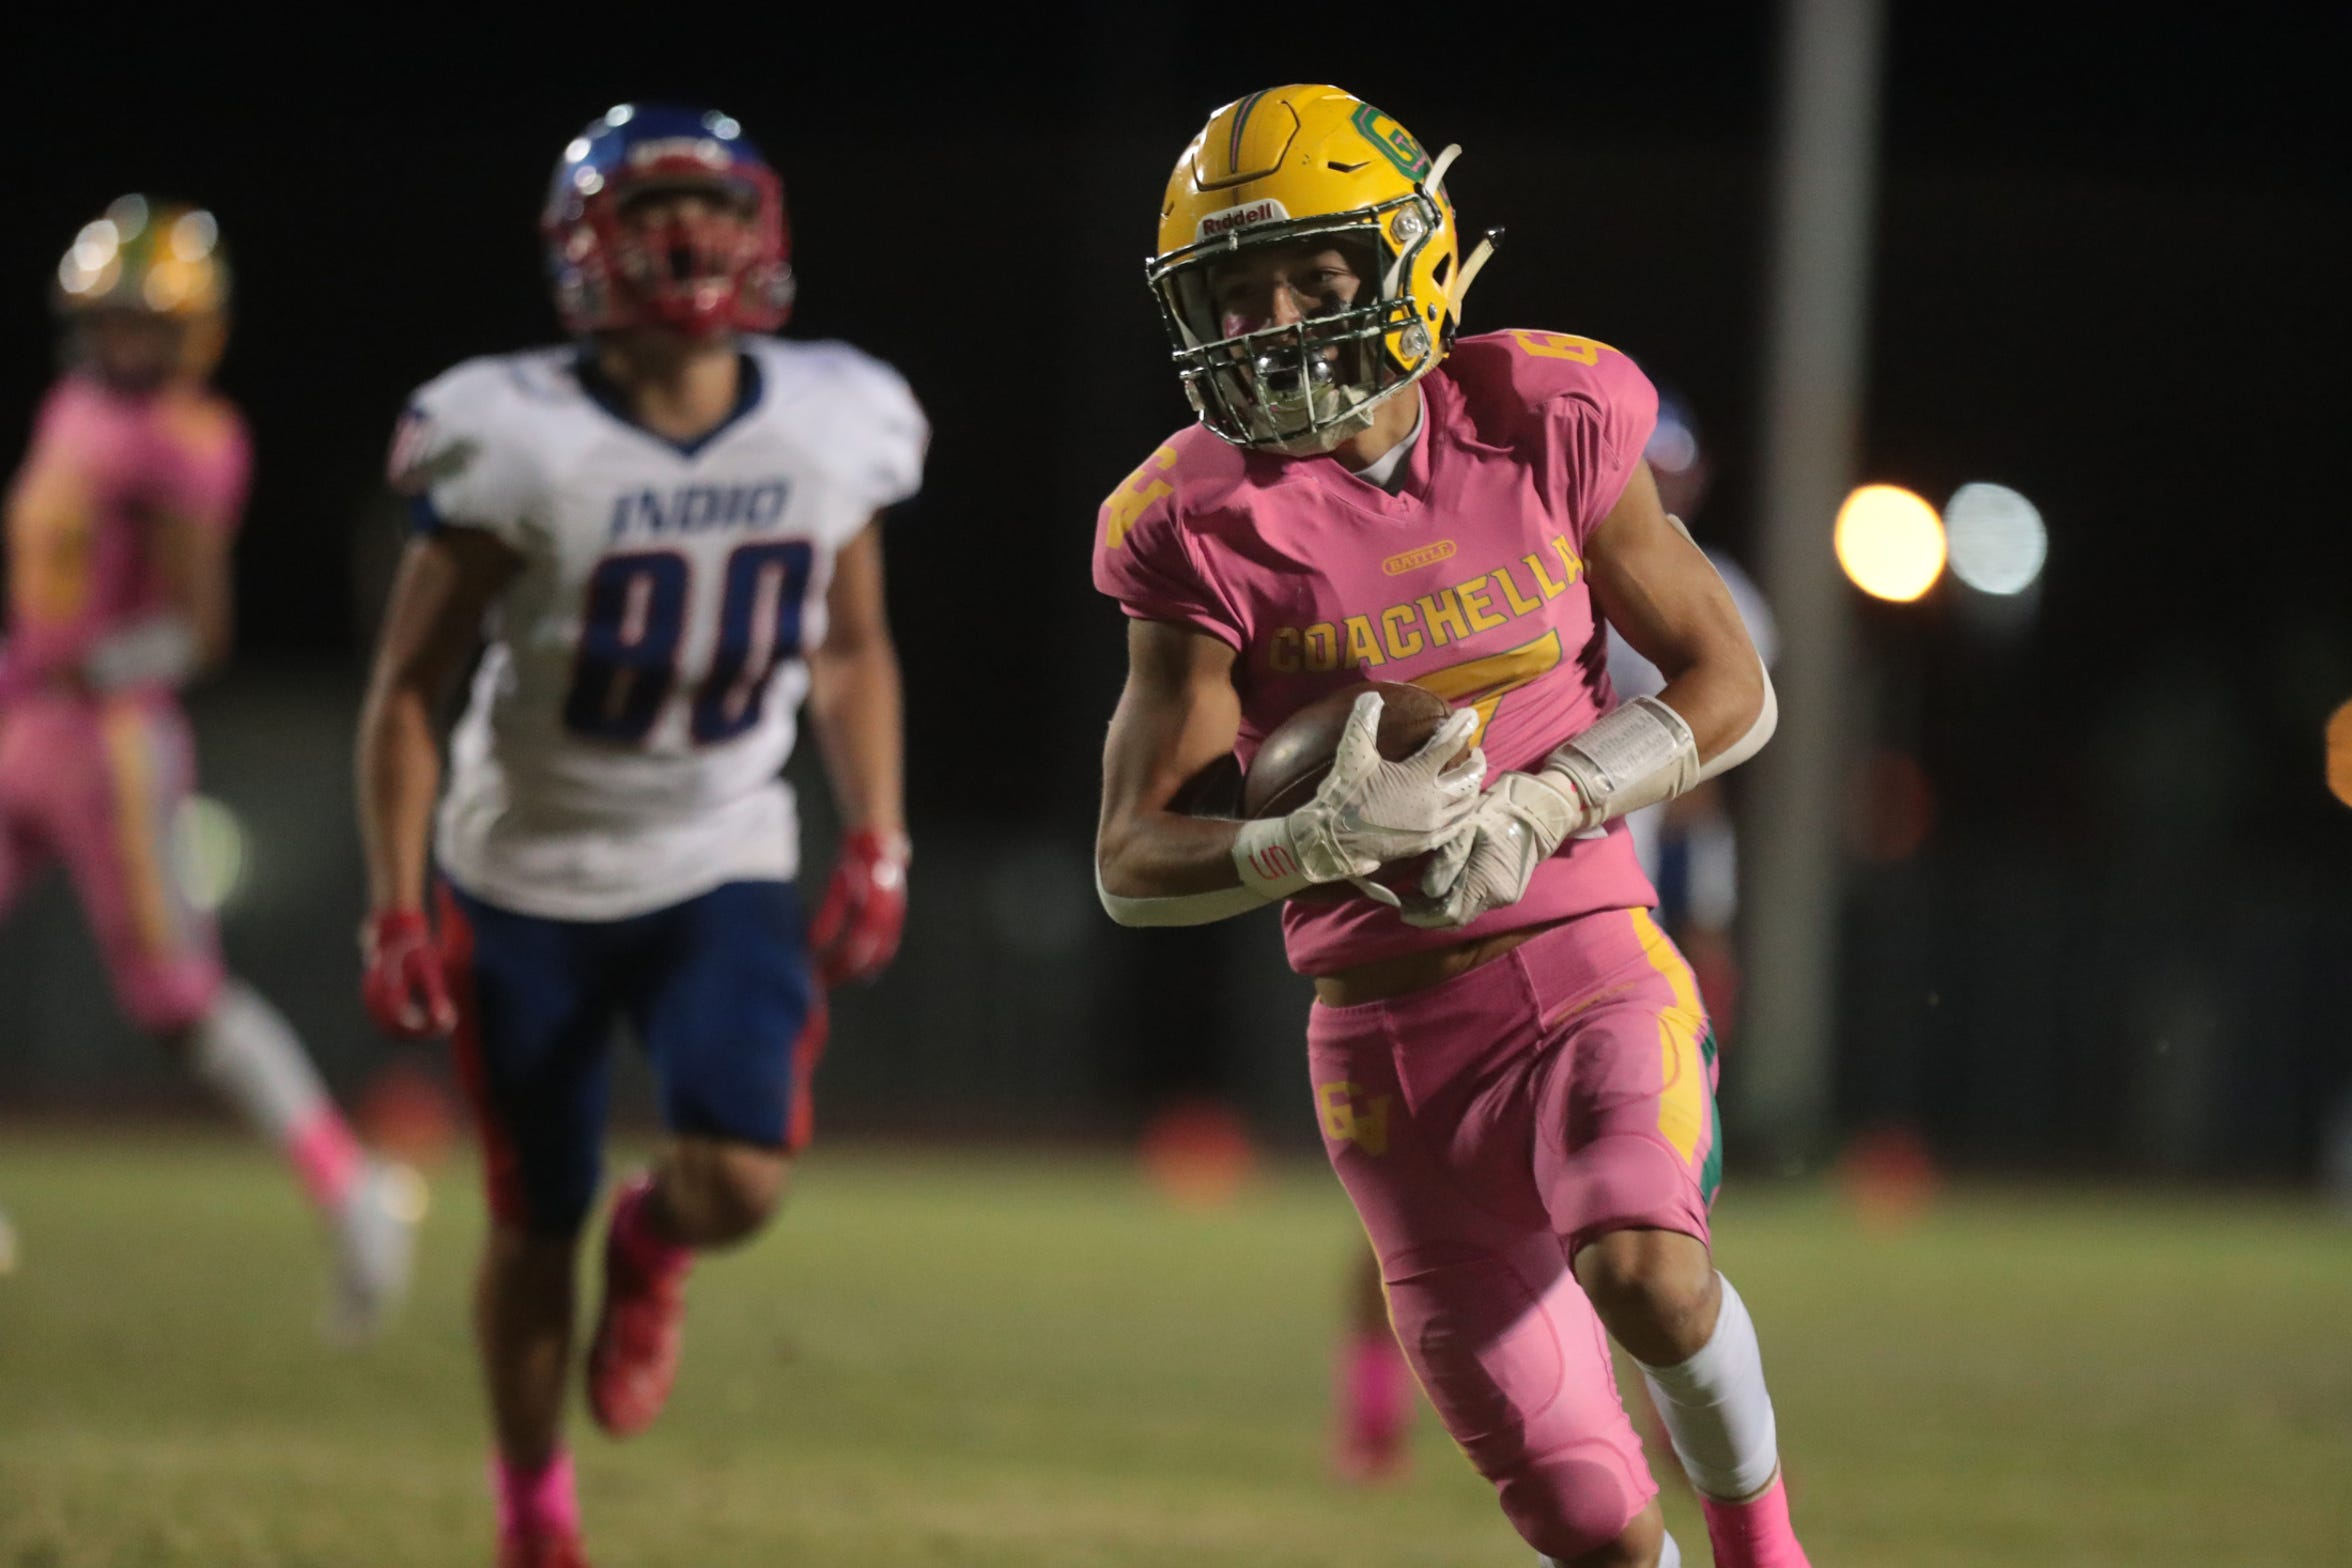 Adan is among the fastest players in the Coachella Valley.